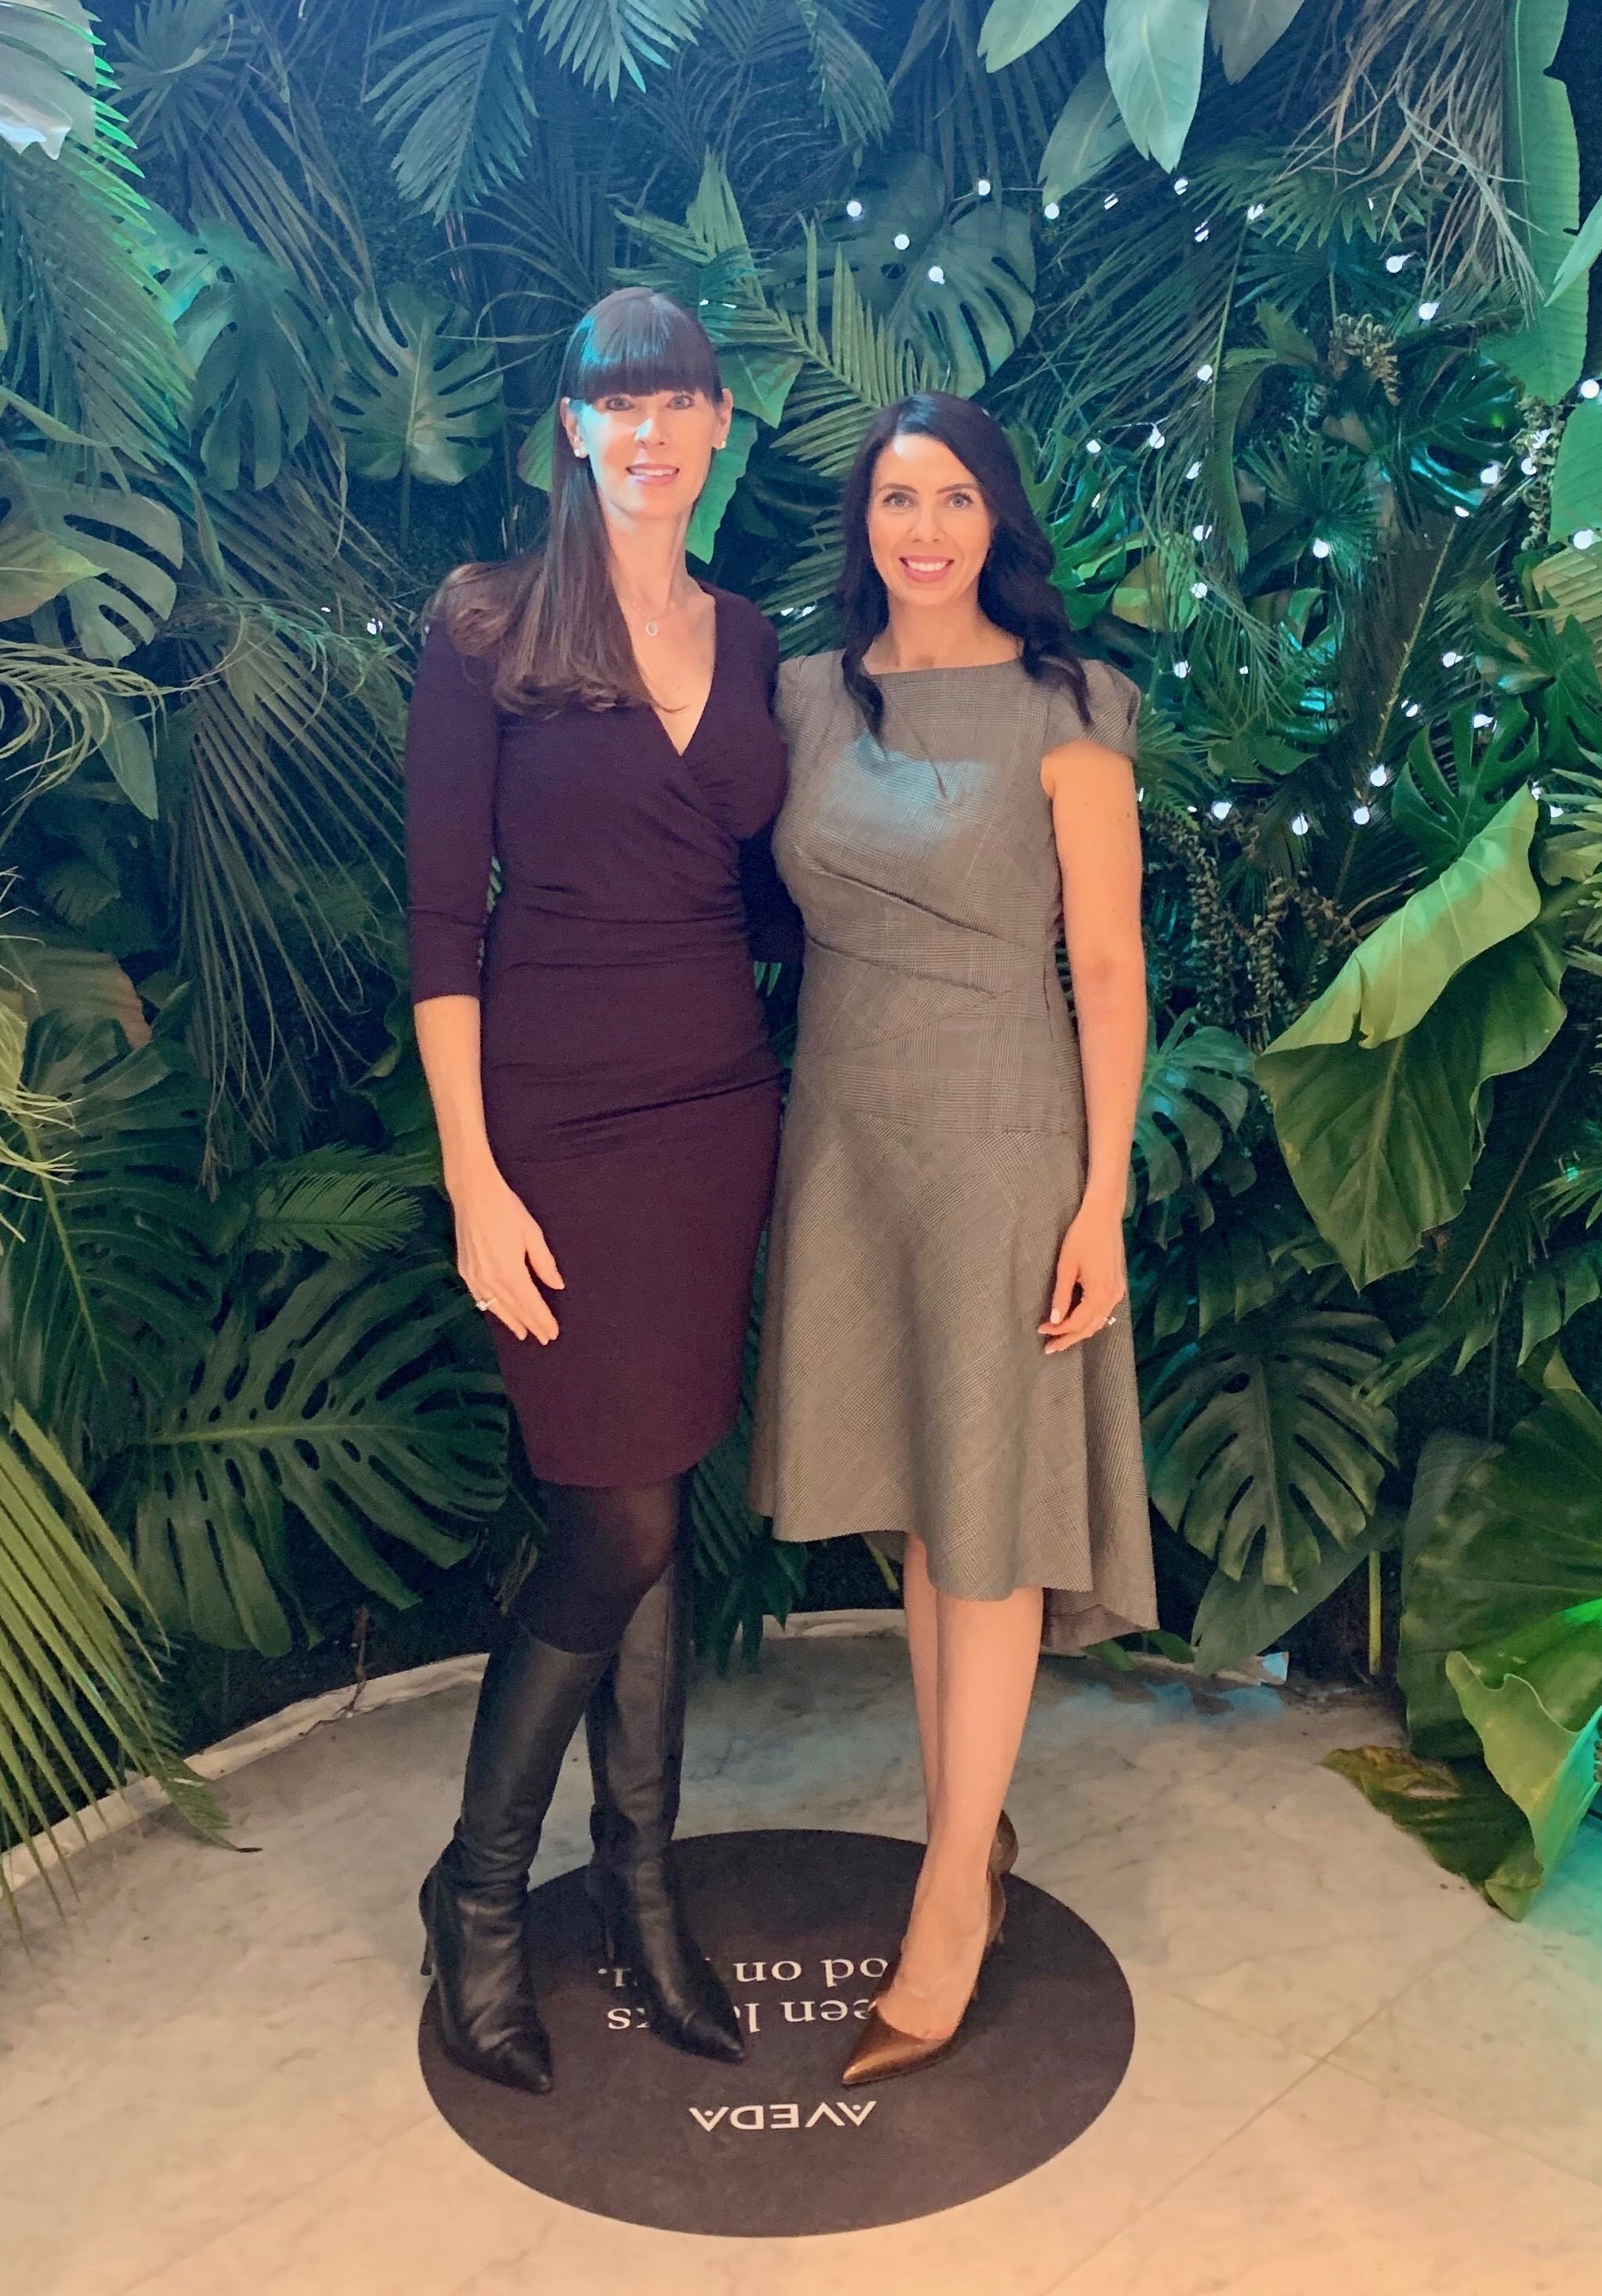 Meghan Marsden who is one of the founders of Veil Intimates was a speaker at Sustainable Business & Design Conference at FIT on April 3rd, 2019 and she wore KetiVani Custom dress. Nancy Trangmar, her business partner, wore KetiVani Ready to Wear knit dress. What an honor.  .